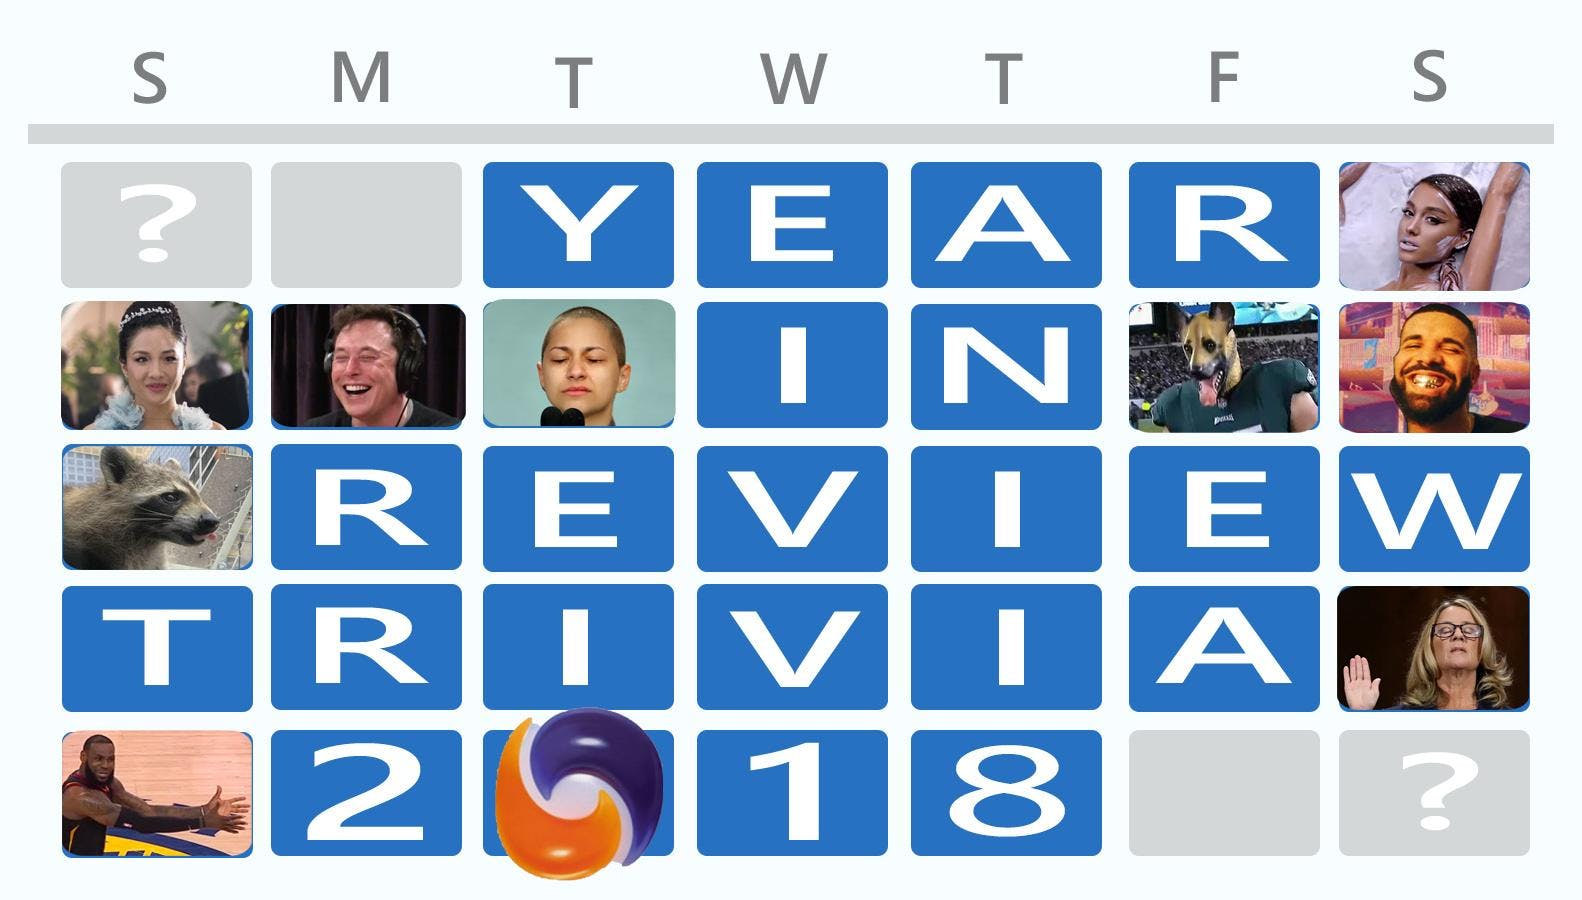 Year In Review Trivia 2018 - Benefiting Central Arizona Shelter Services